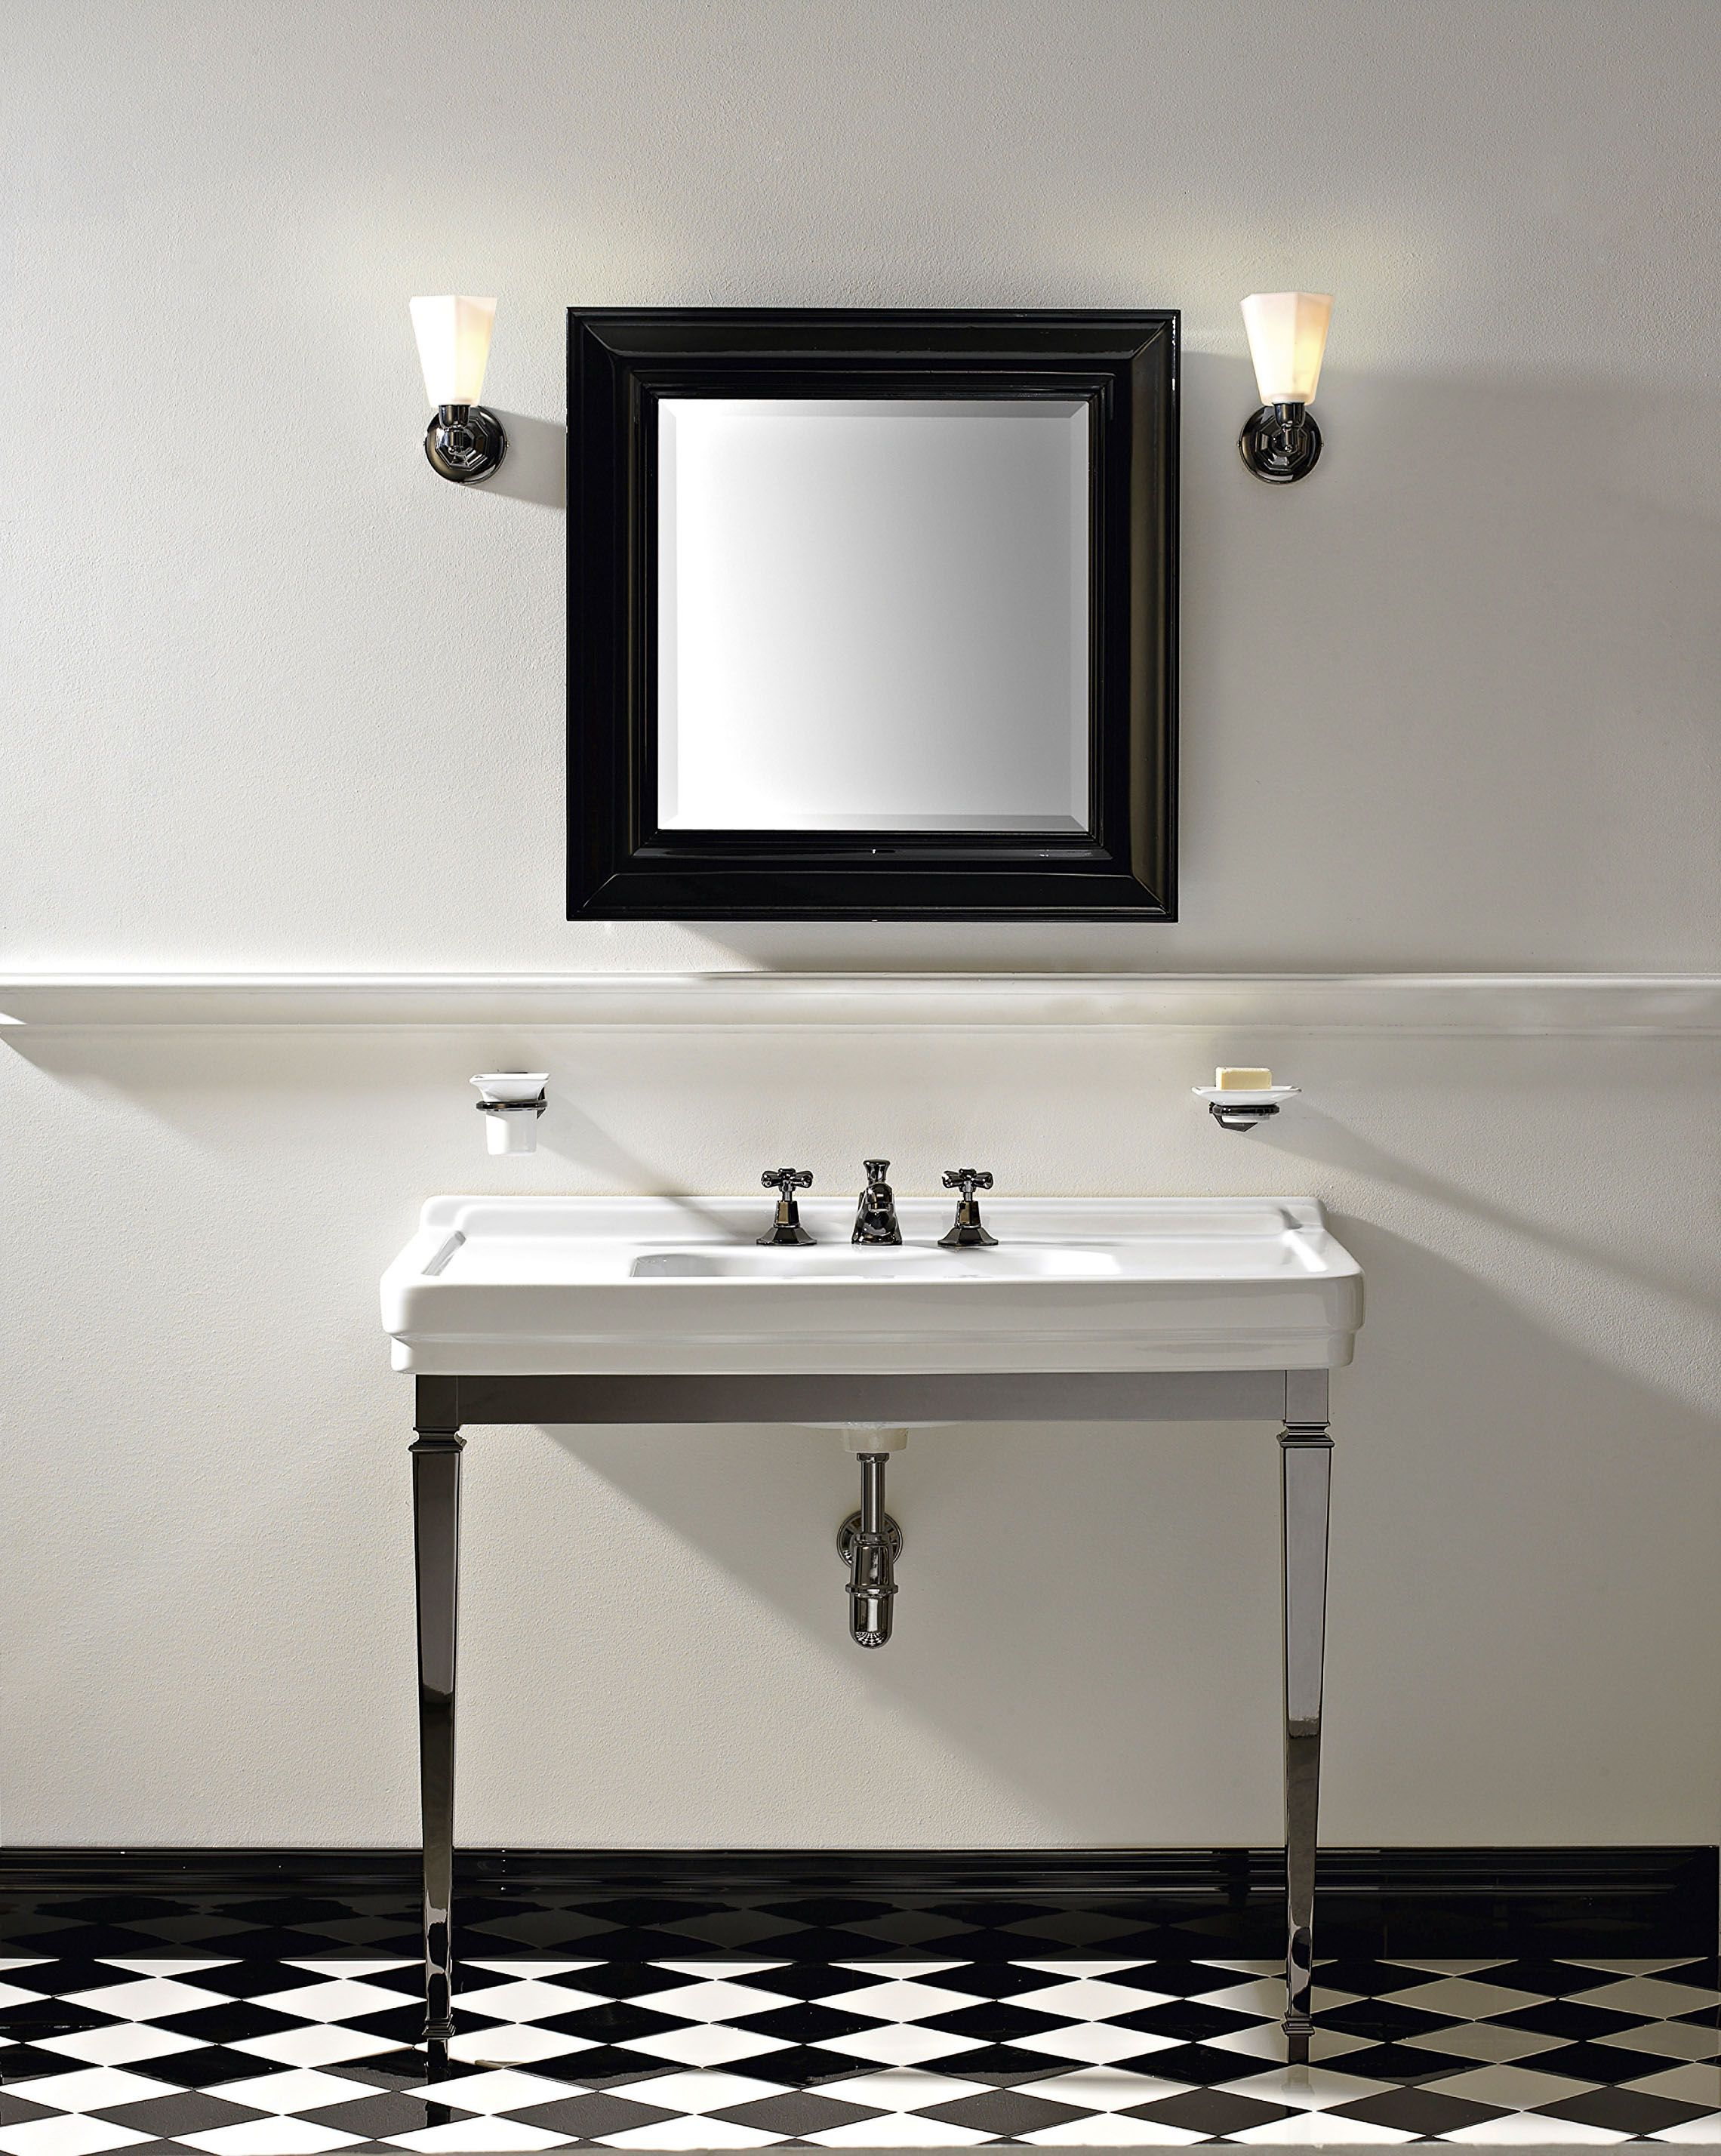 coltsesbathroom size ideases full forte bathrooms wooden accessories picture of ideas bathroom design inspirations set india indianapolis gray black glitter wholesale kohler